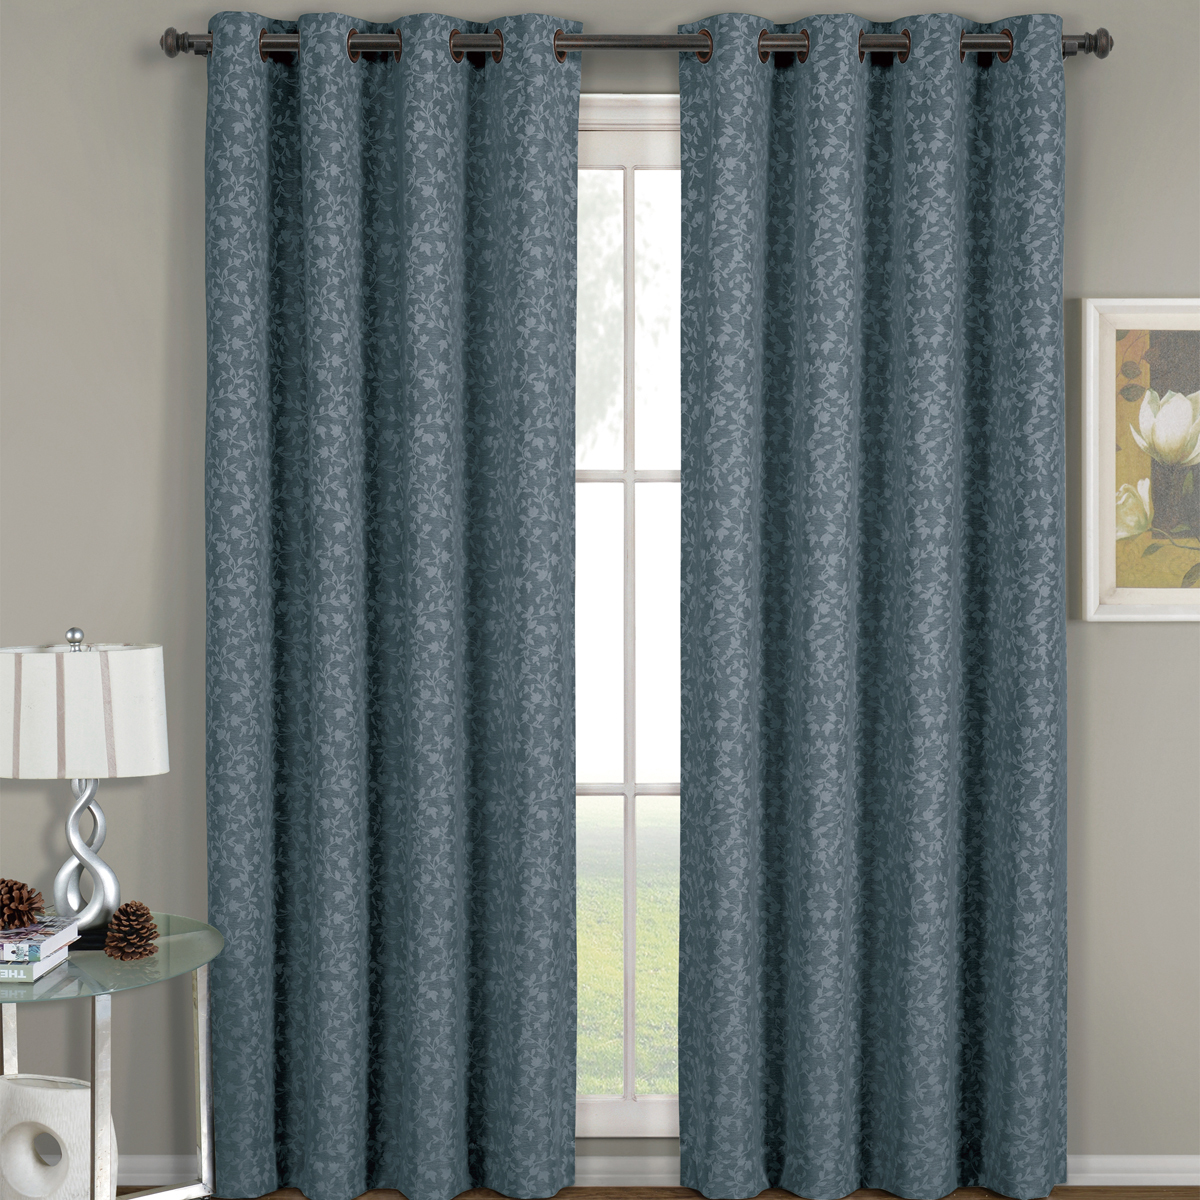 Fiorela Heavyweight Jacquard Drapes Floral Curtain Panels With Grommets (Single) - Blue - 54x63